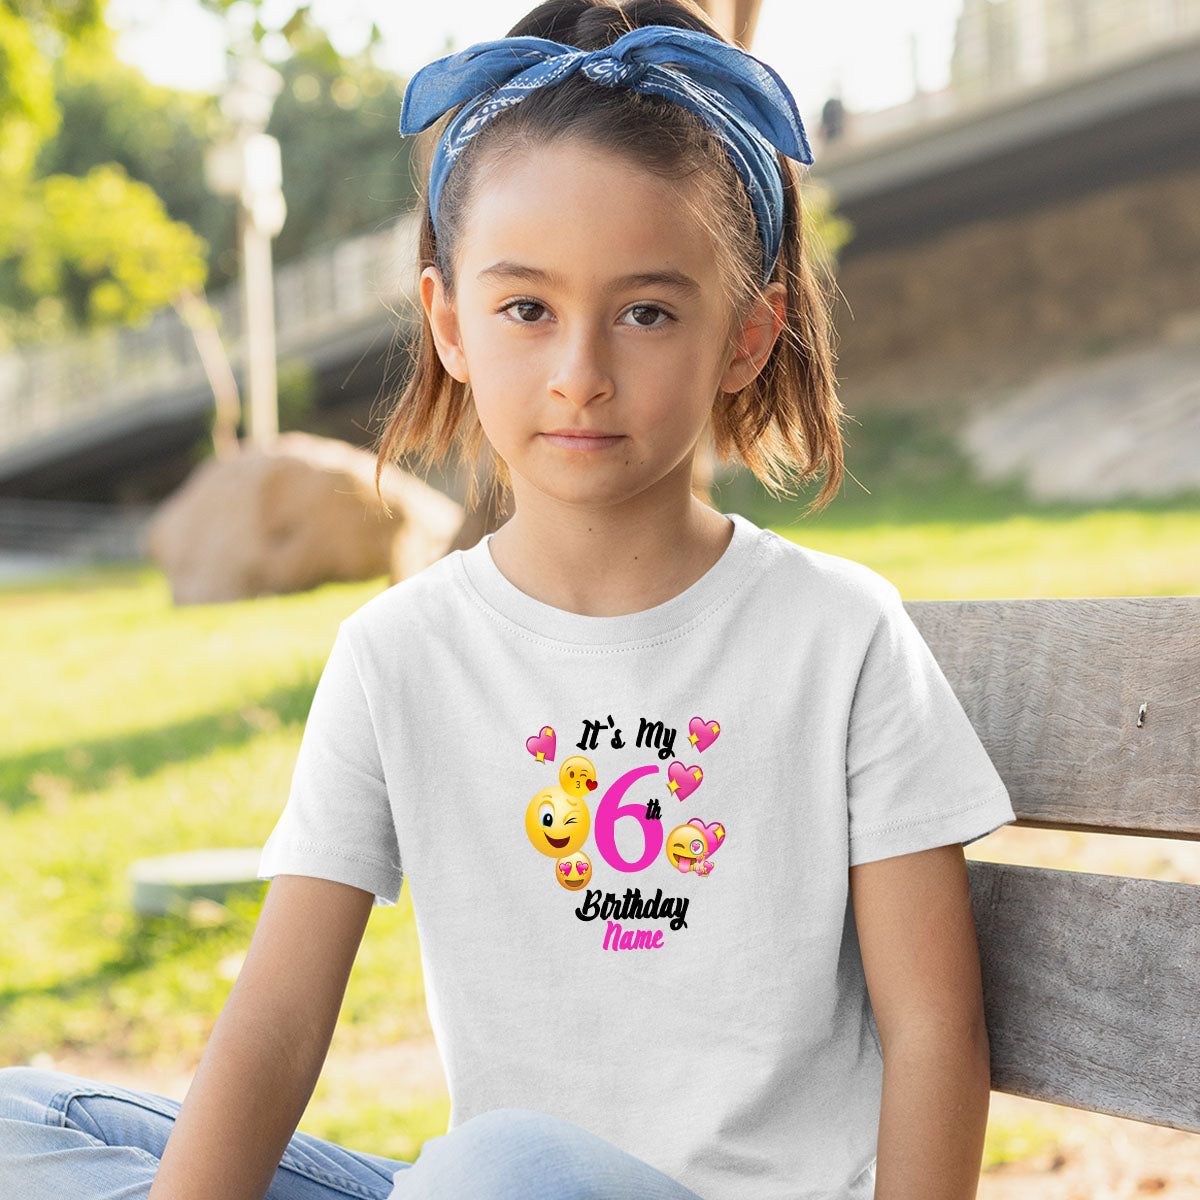 Sprinklecart Kids Special Personalized Name Printed Birthday T Shirt for Your 6th Birthday Super Star